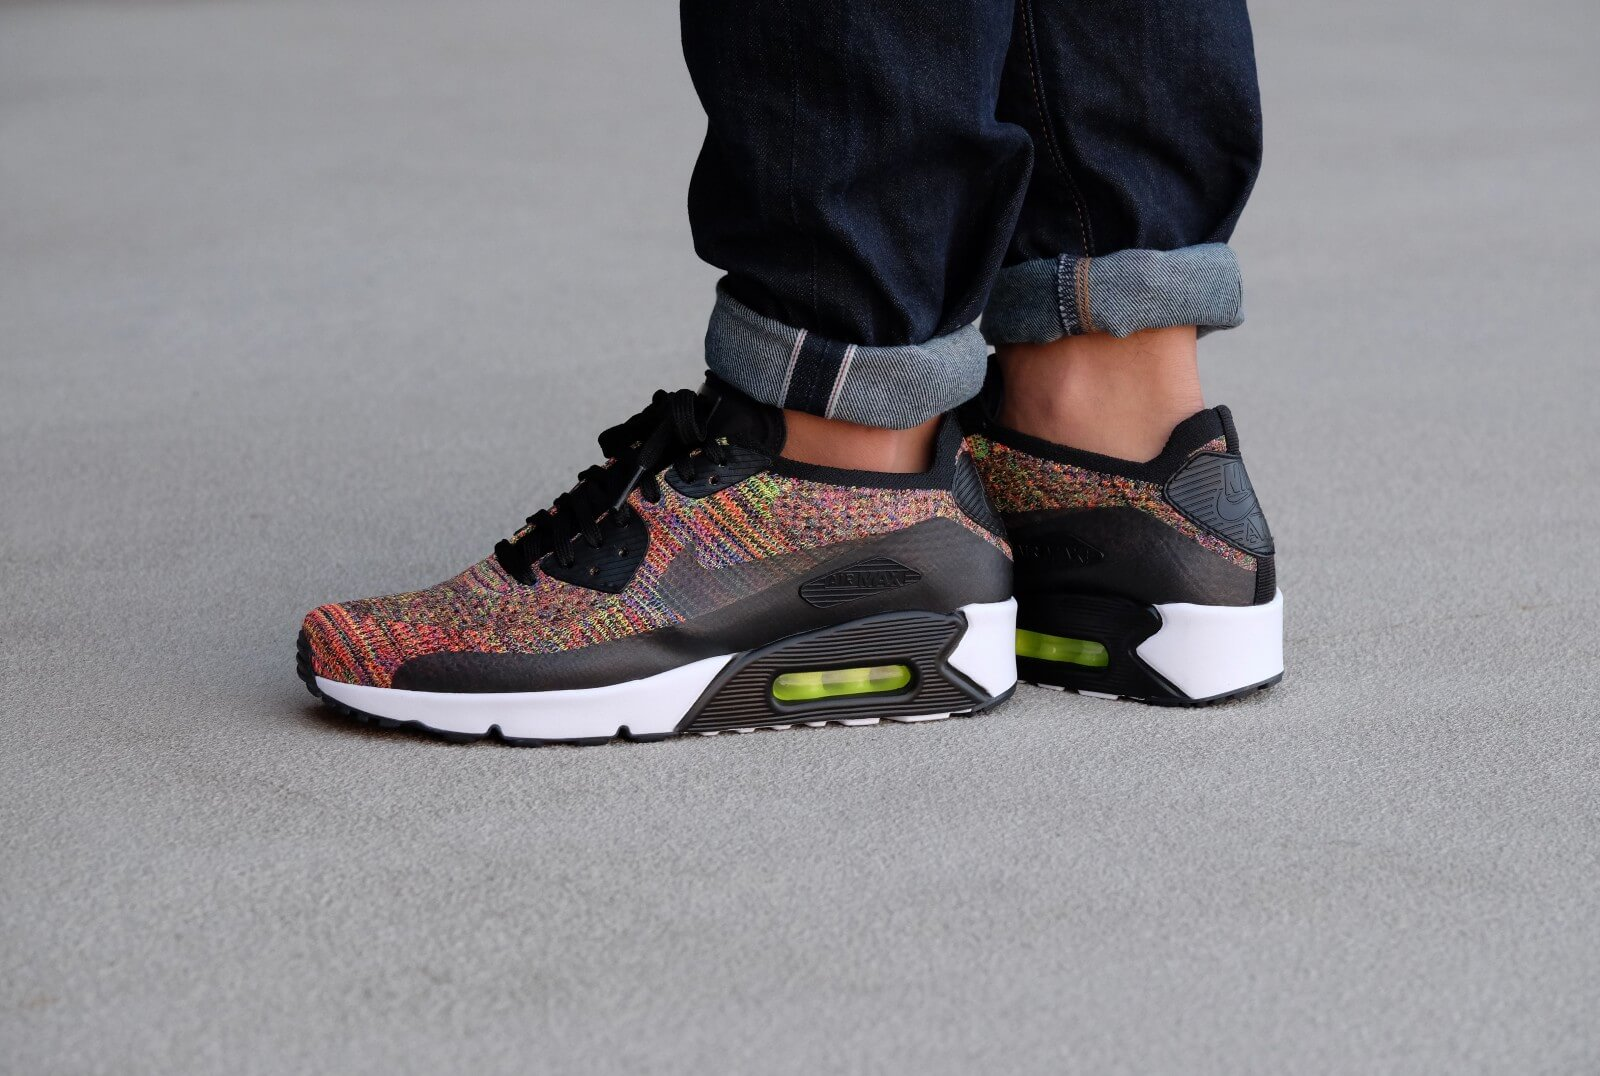 Nike Air Max 90 Ultra 2.0 Flyknit Multicolor BlackMulti 875943 002